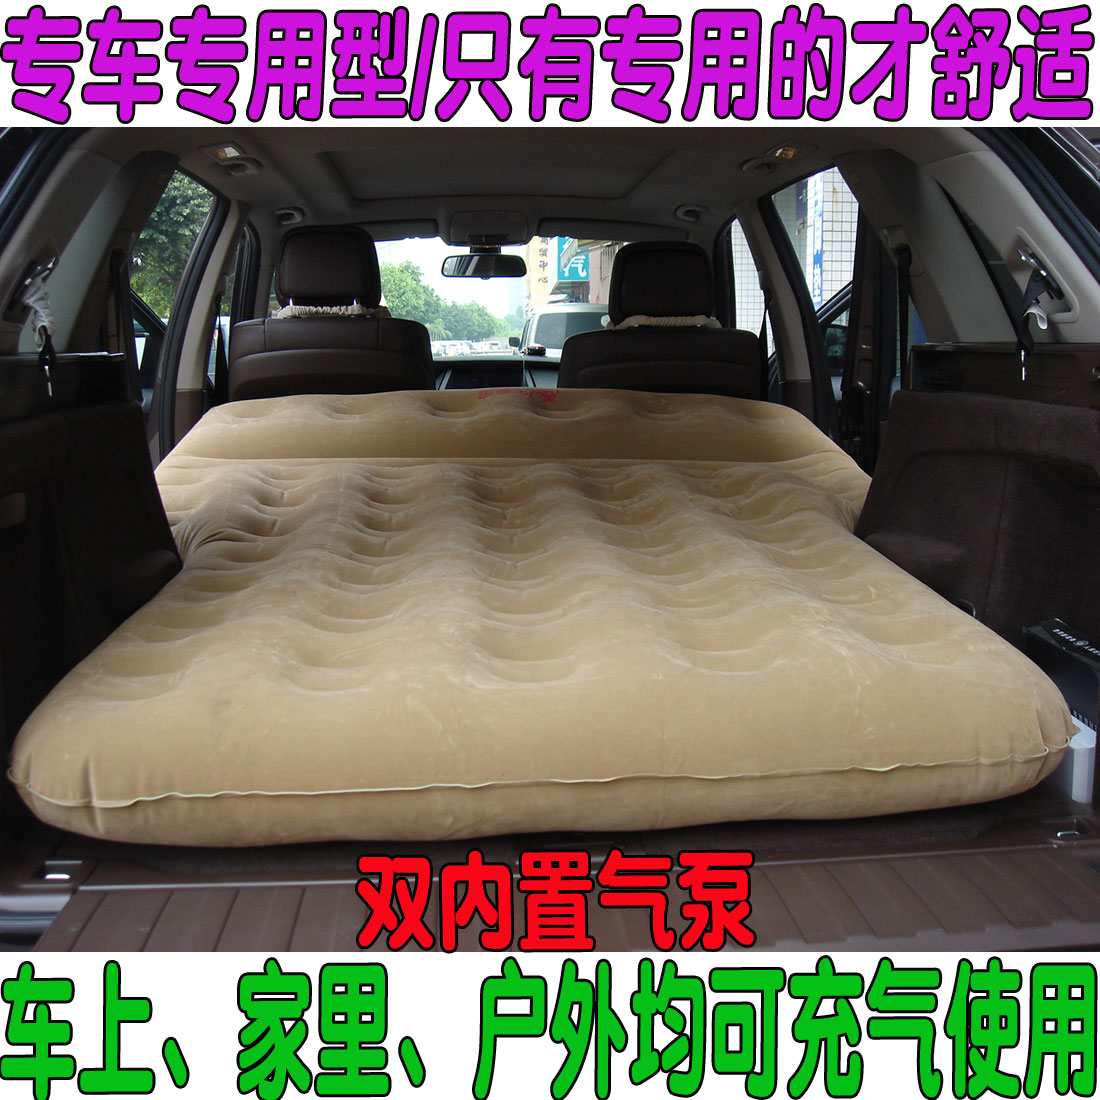 Octavia car travel bed vehicle air mattress bed mattress SUV wild emperor car car car bed air bed